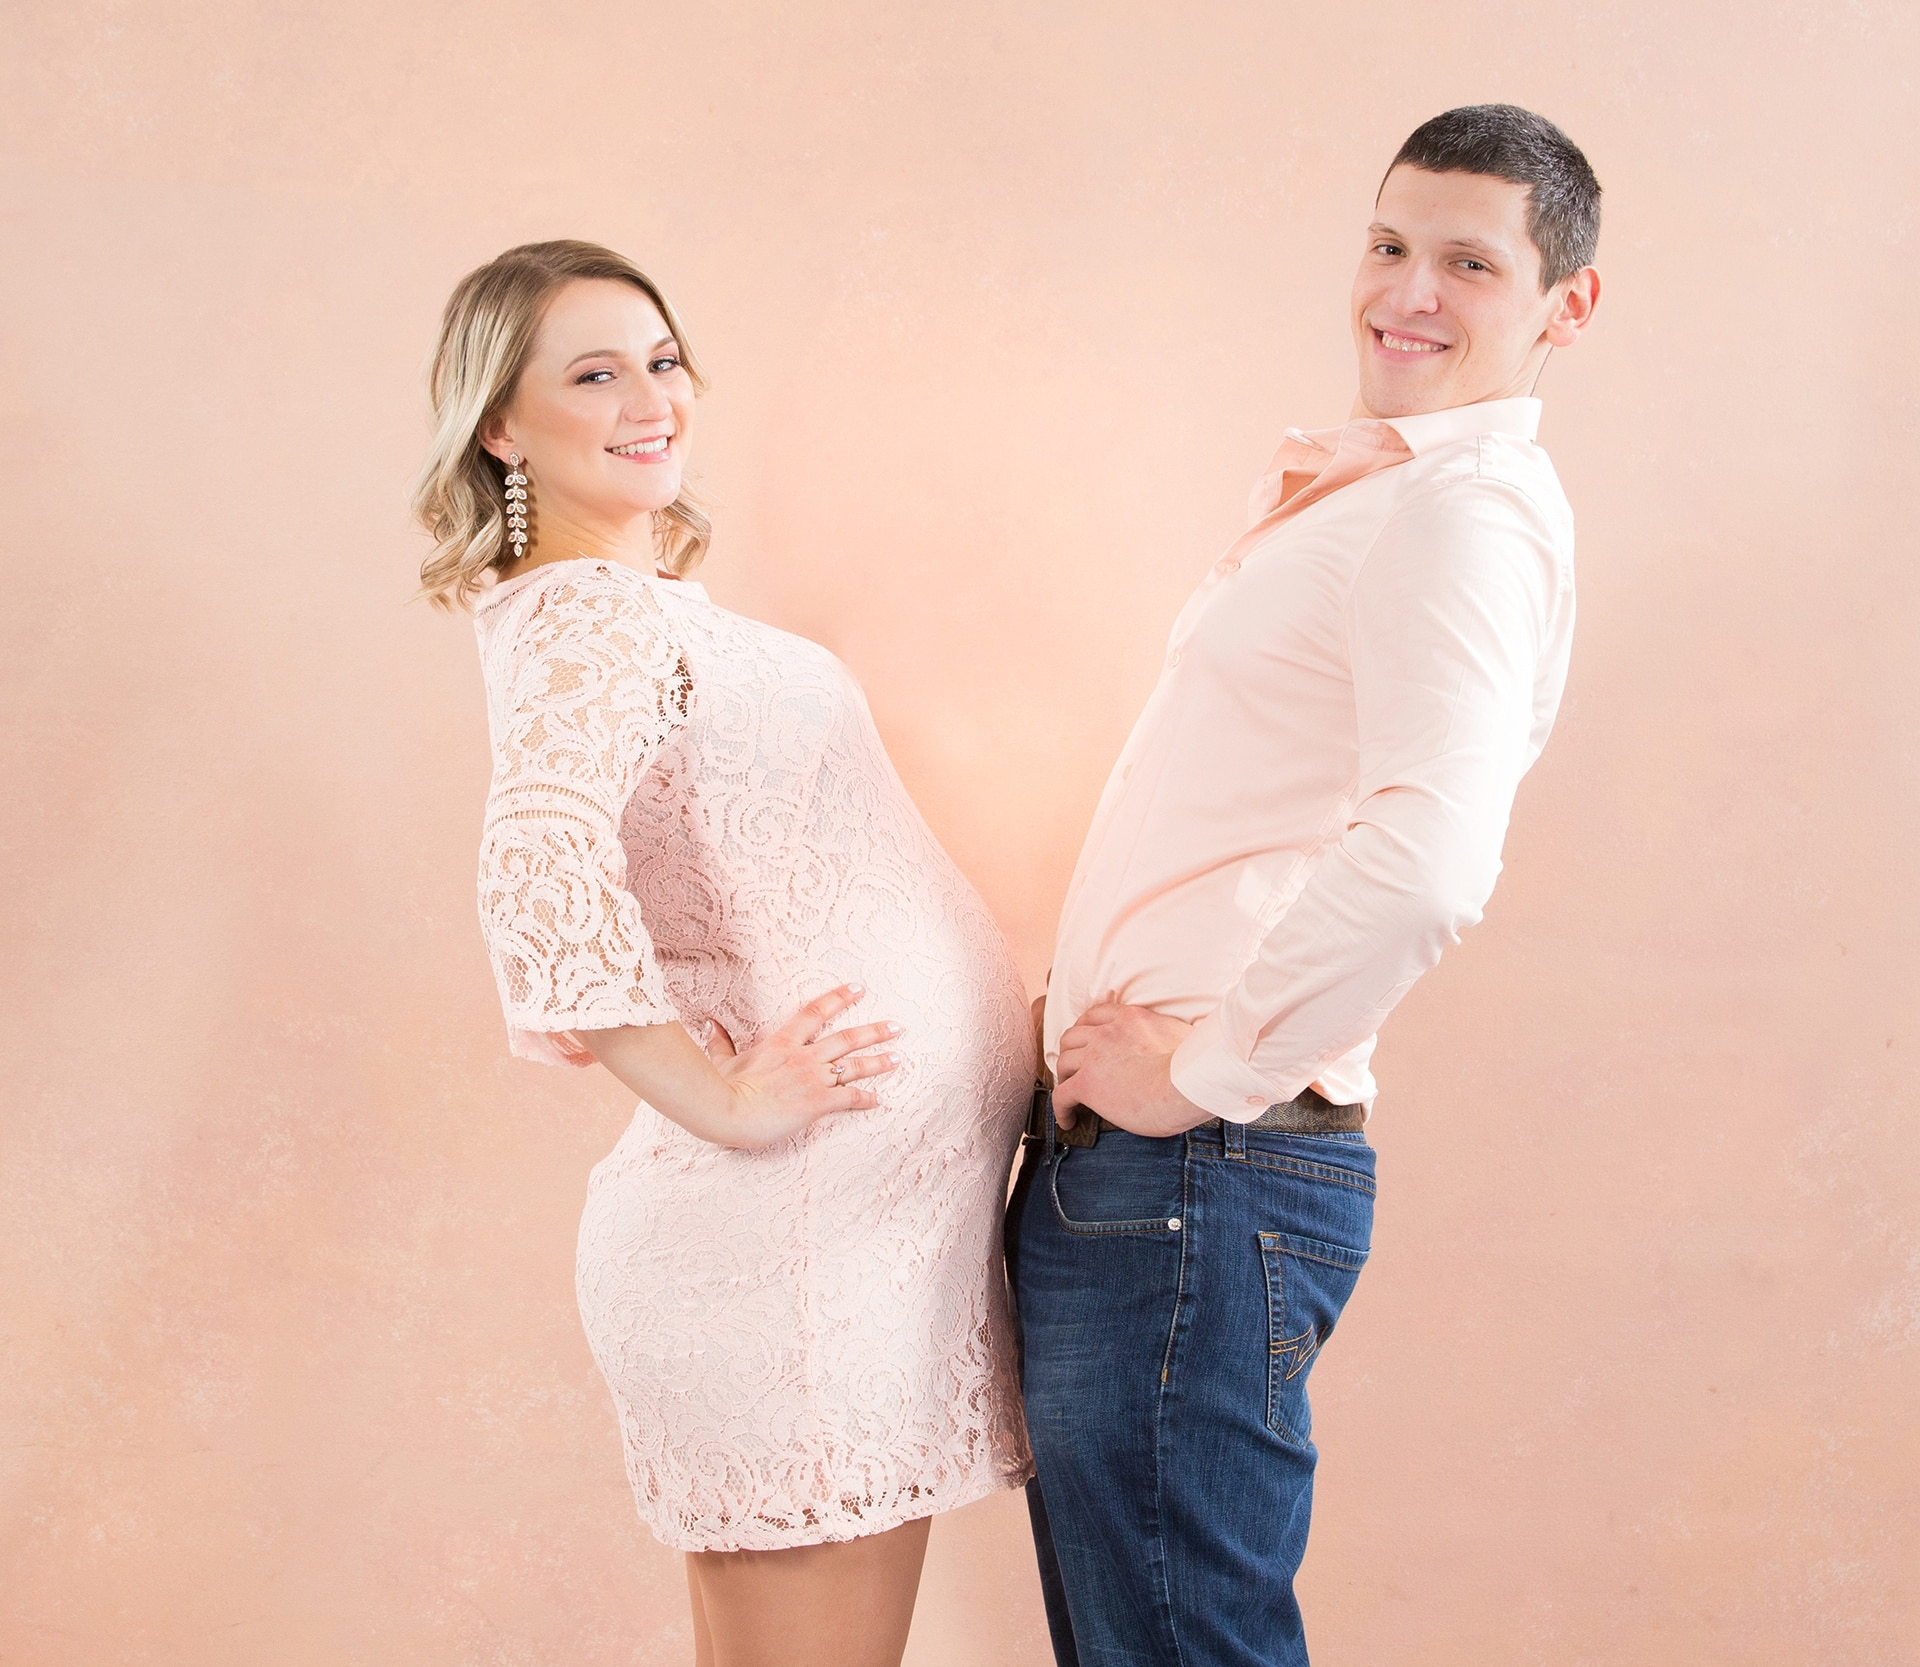 Maternity Photography Toronto